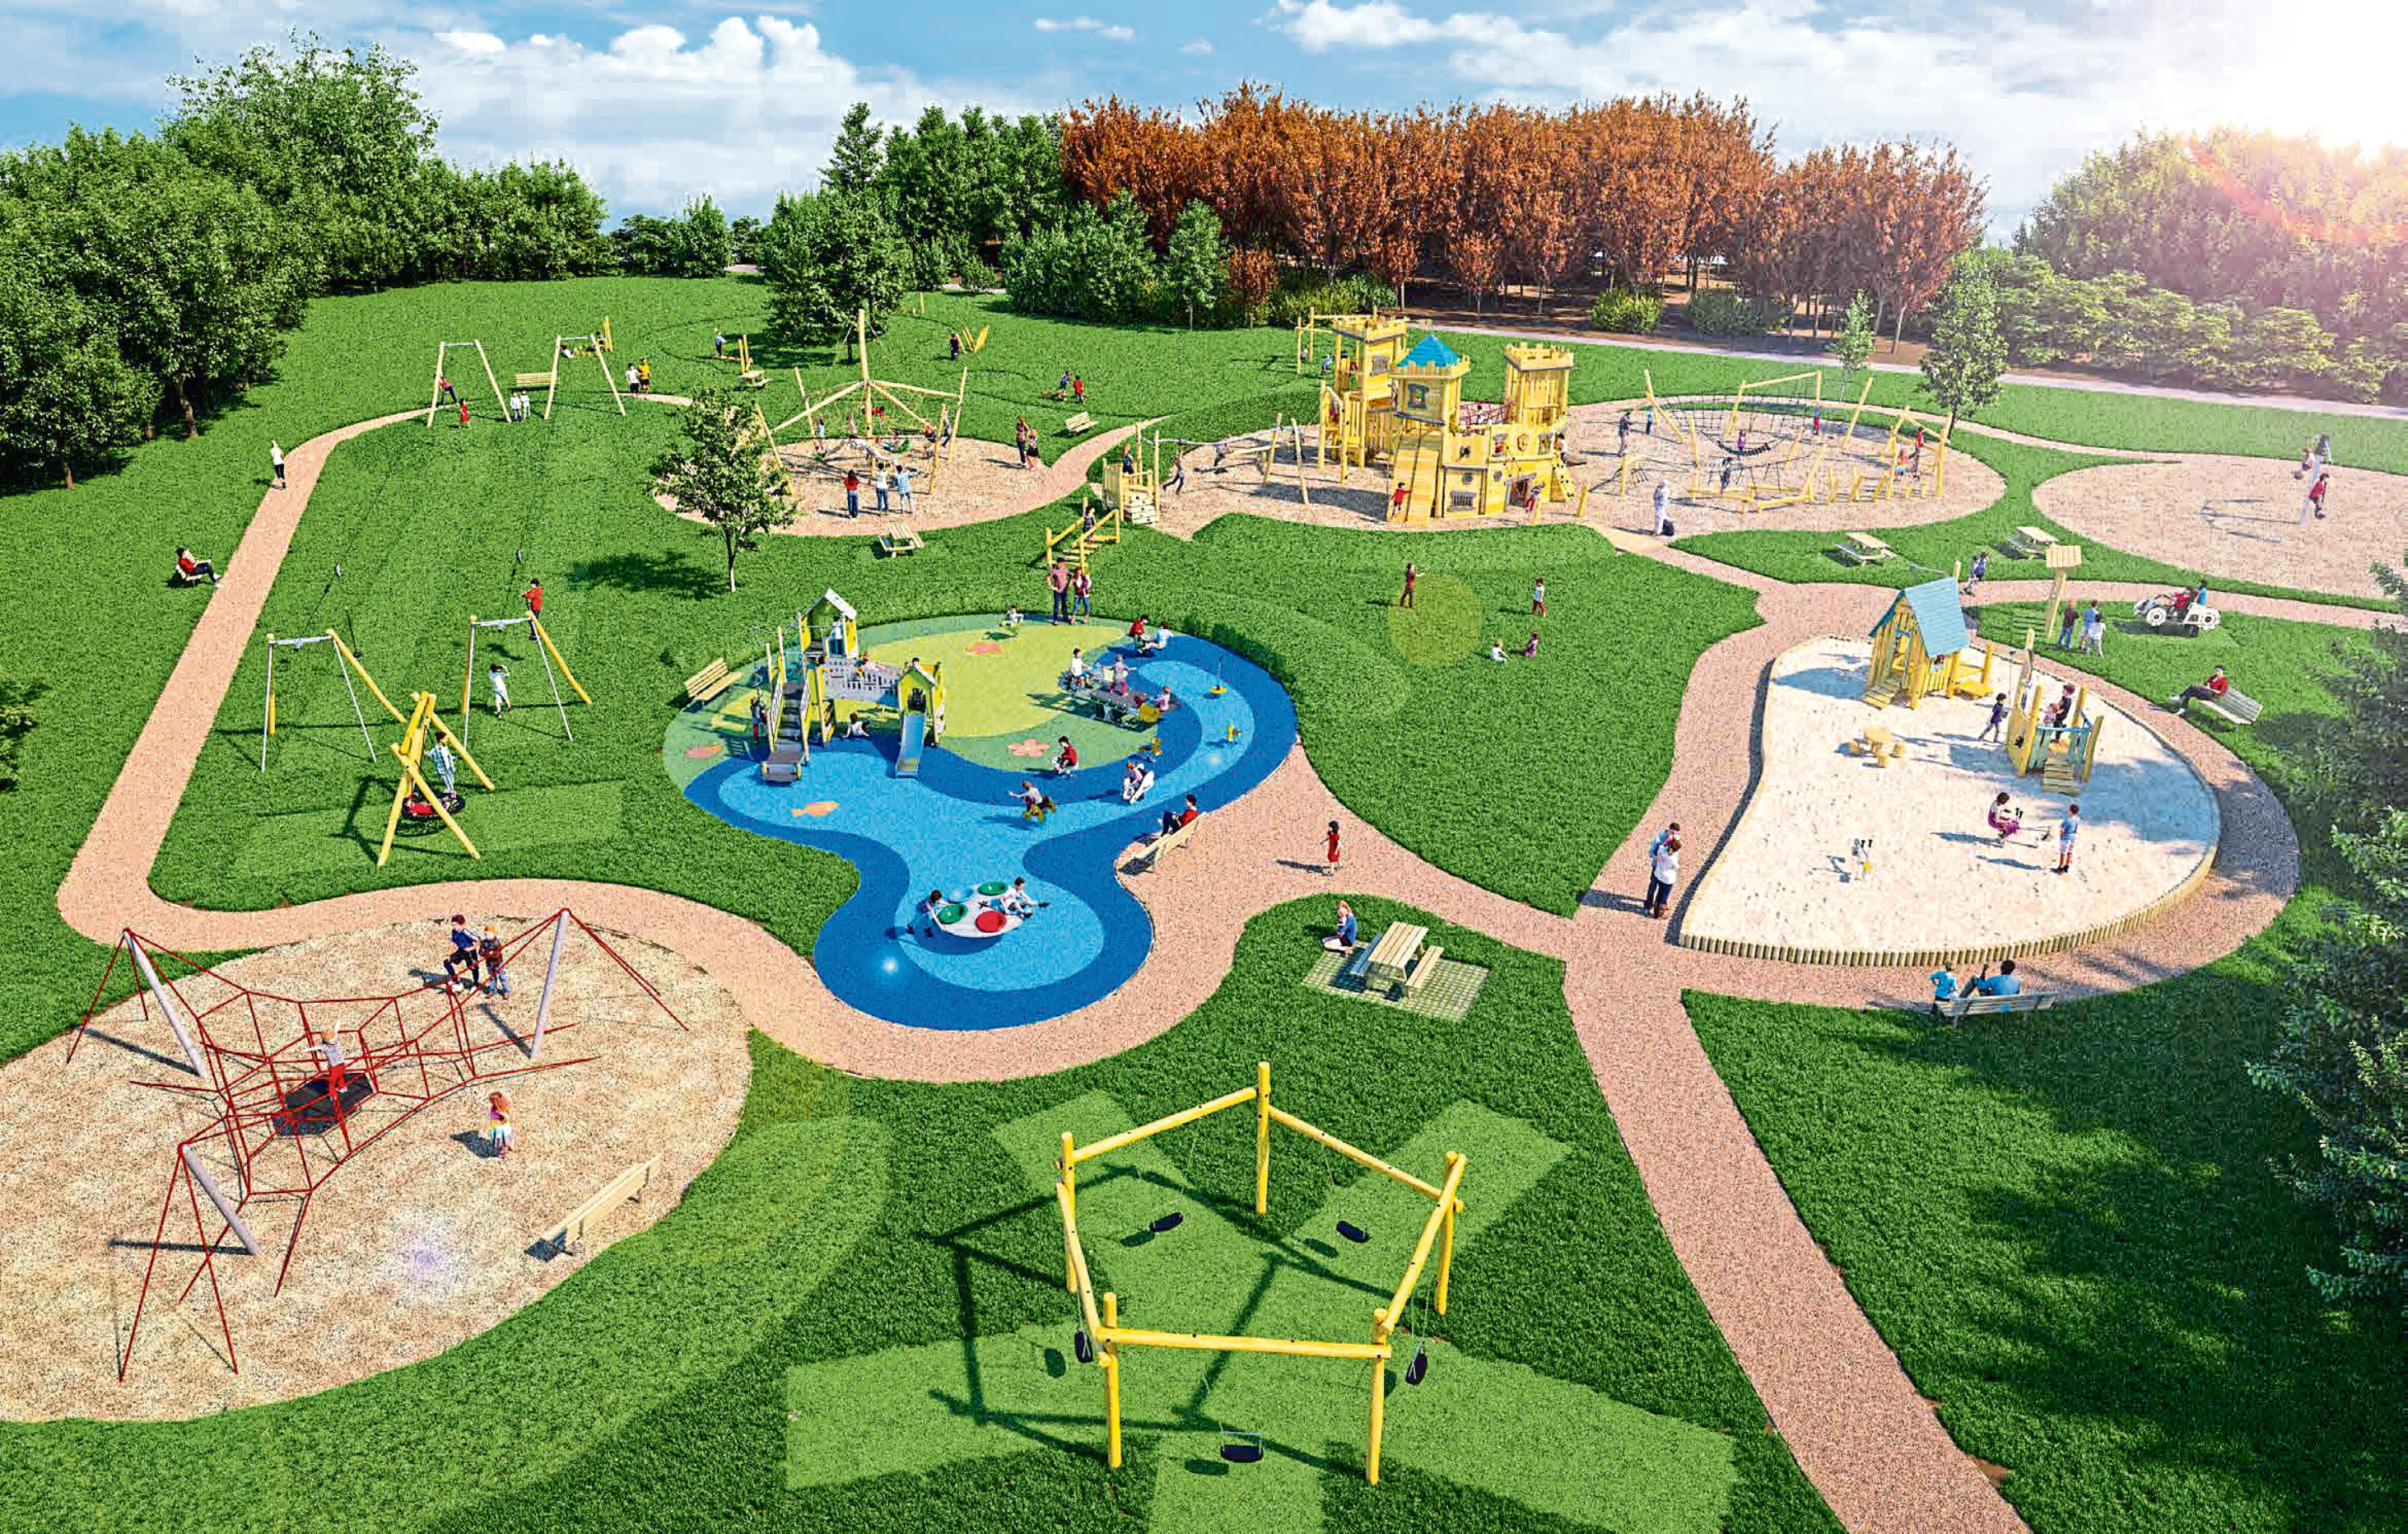 How the park could look when complete